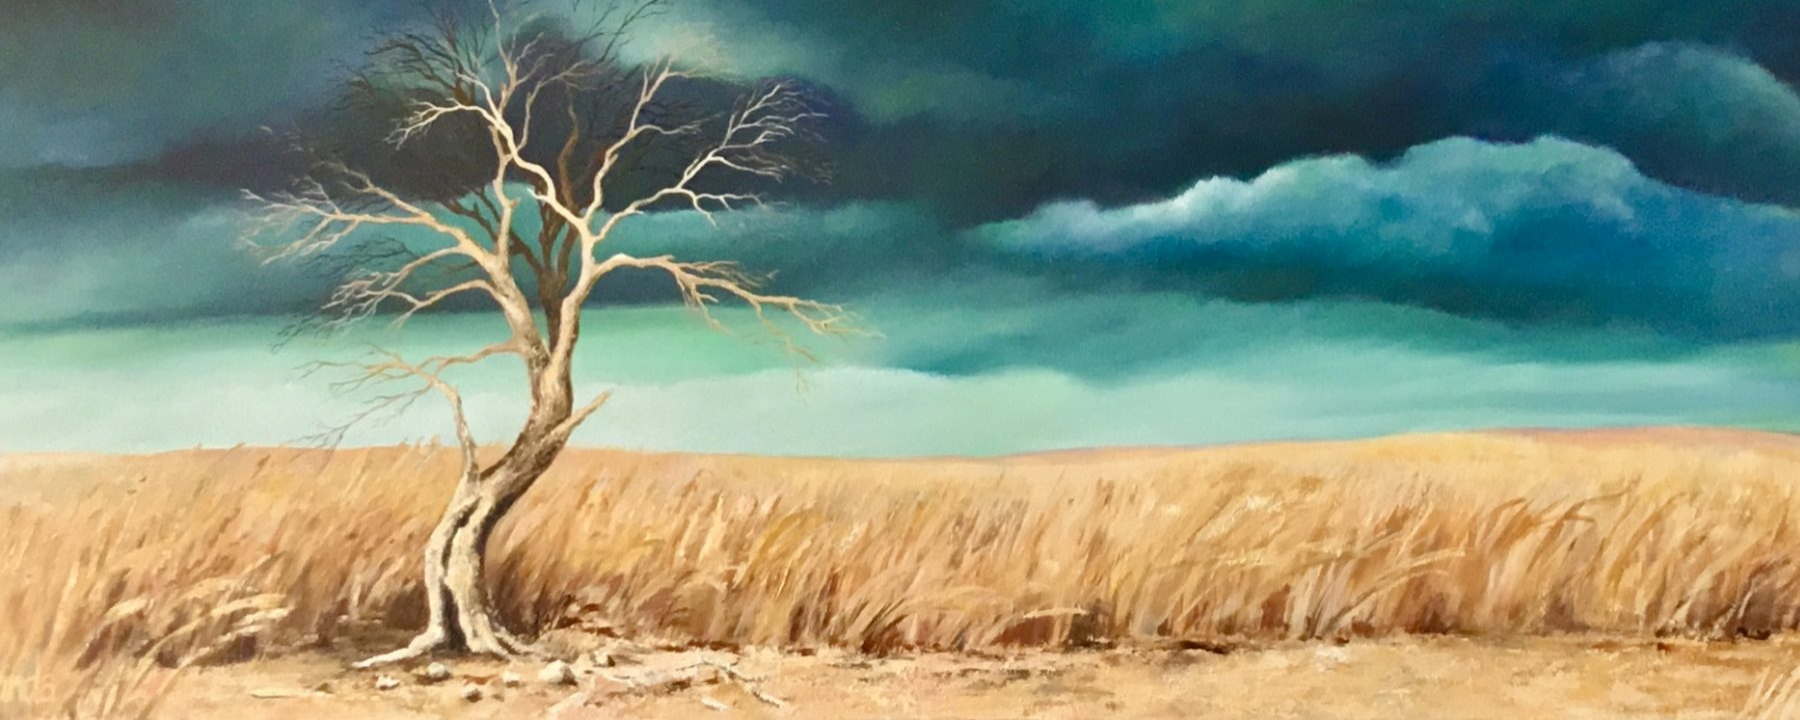 The Wild Wheat Belt Lucinda Leveille Scaled 1800×720 Acf Cropped 2